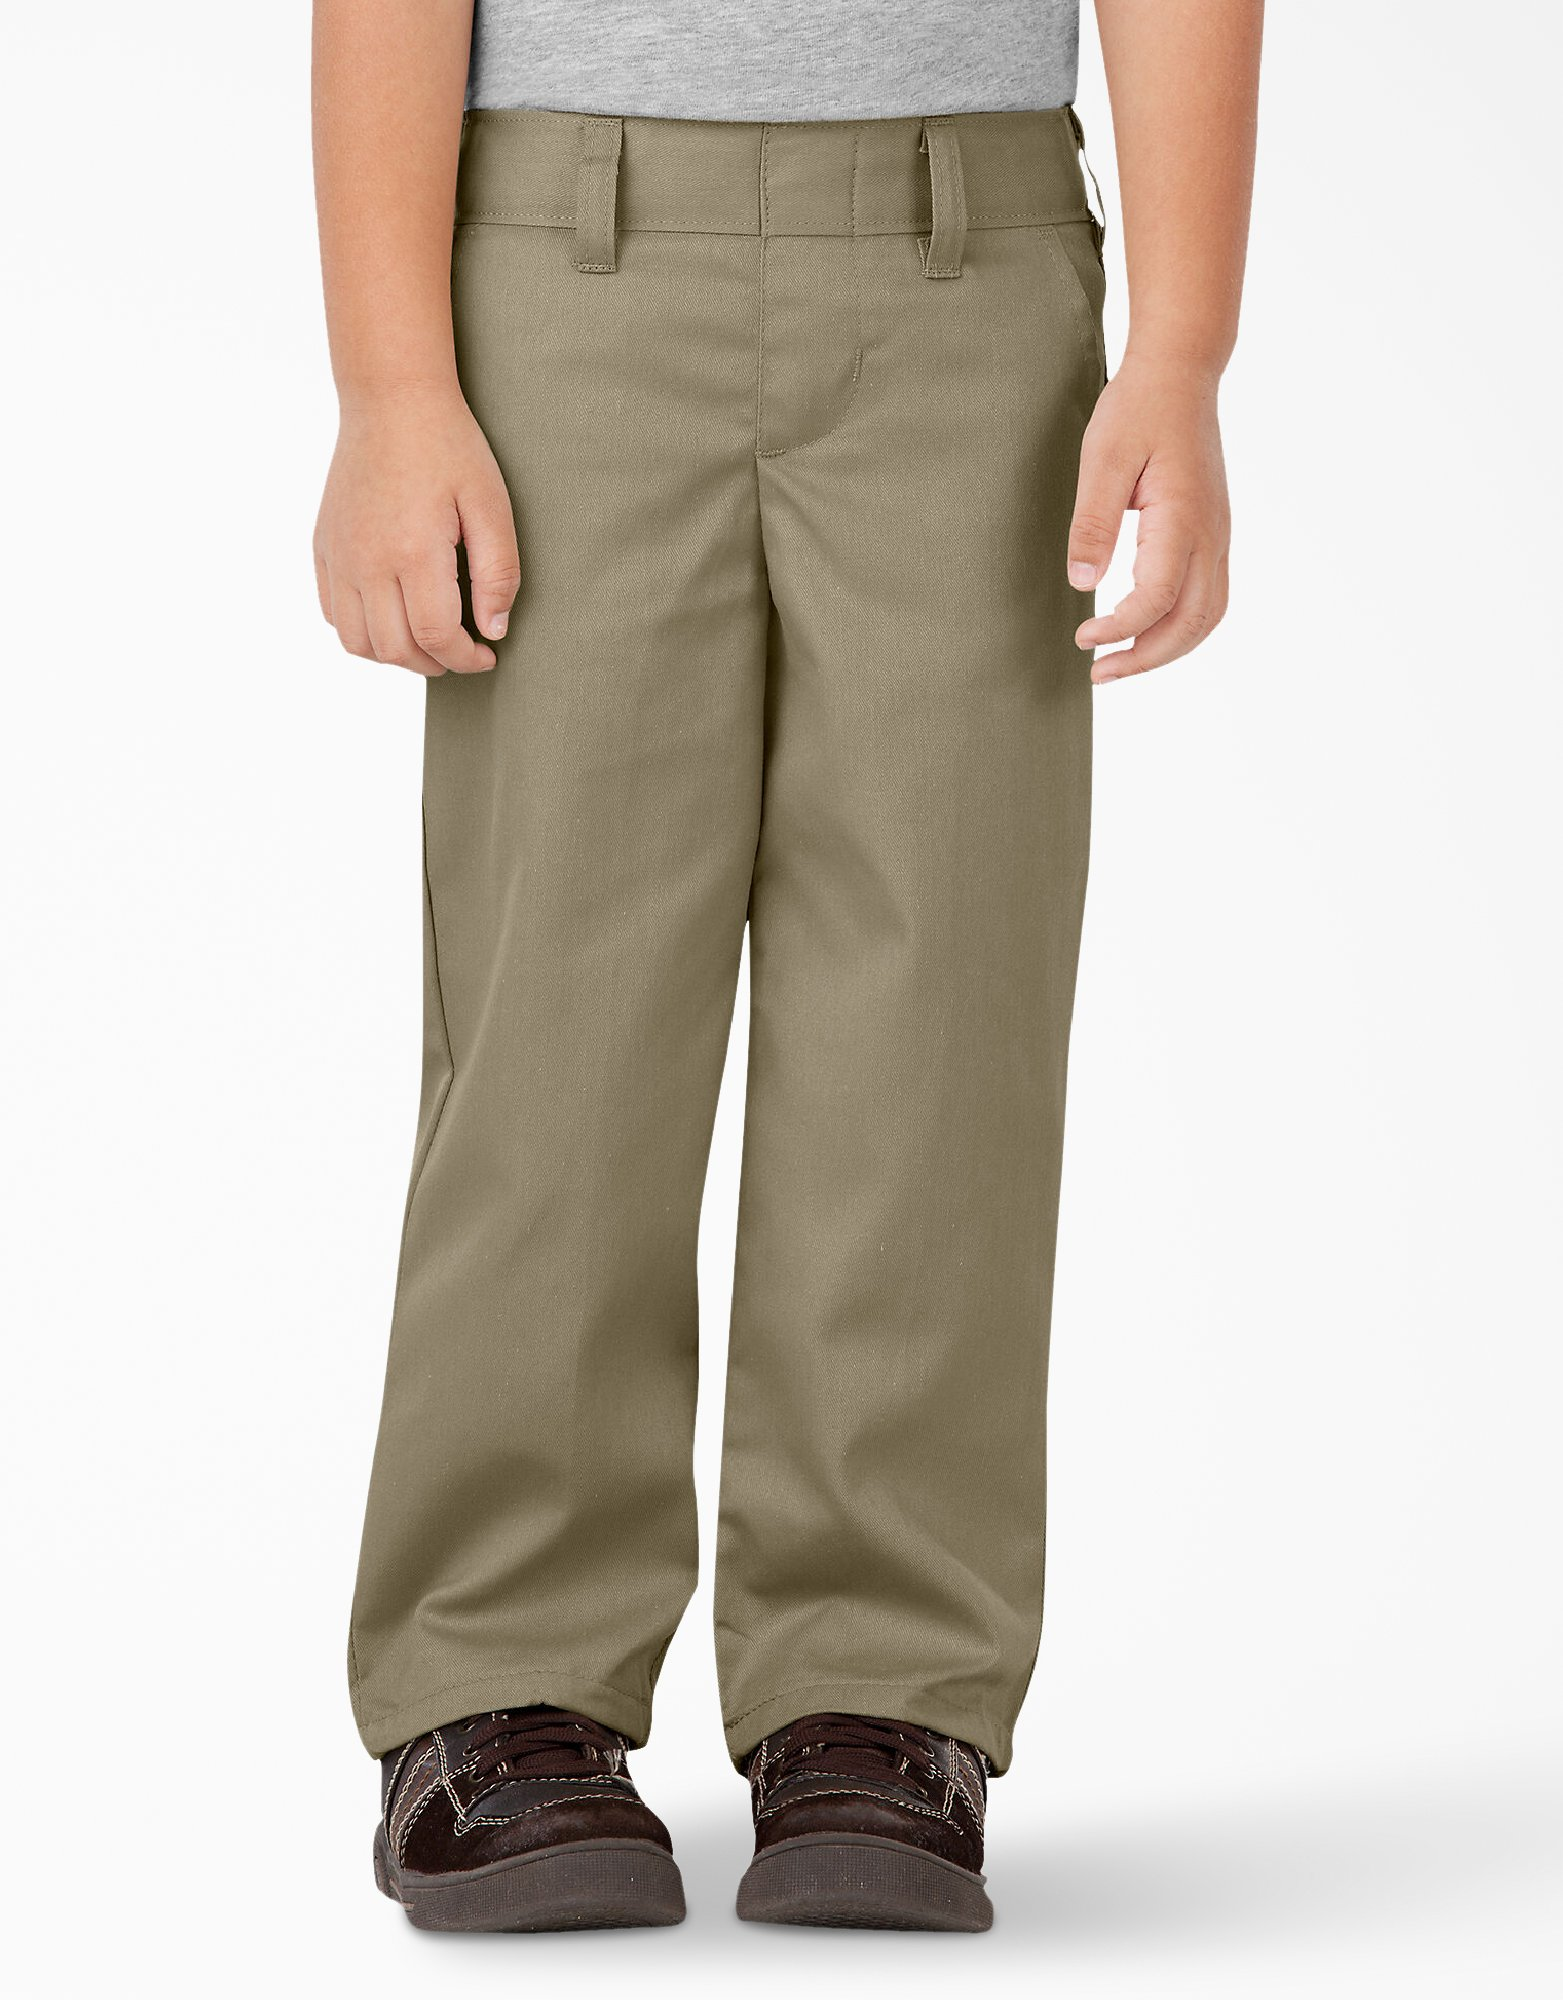 Toddler Classic Fit Straight Leg Pull-on Pants - Military Khaki (KH)